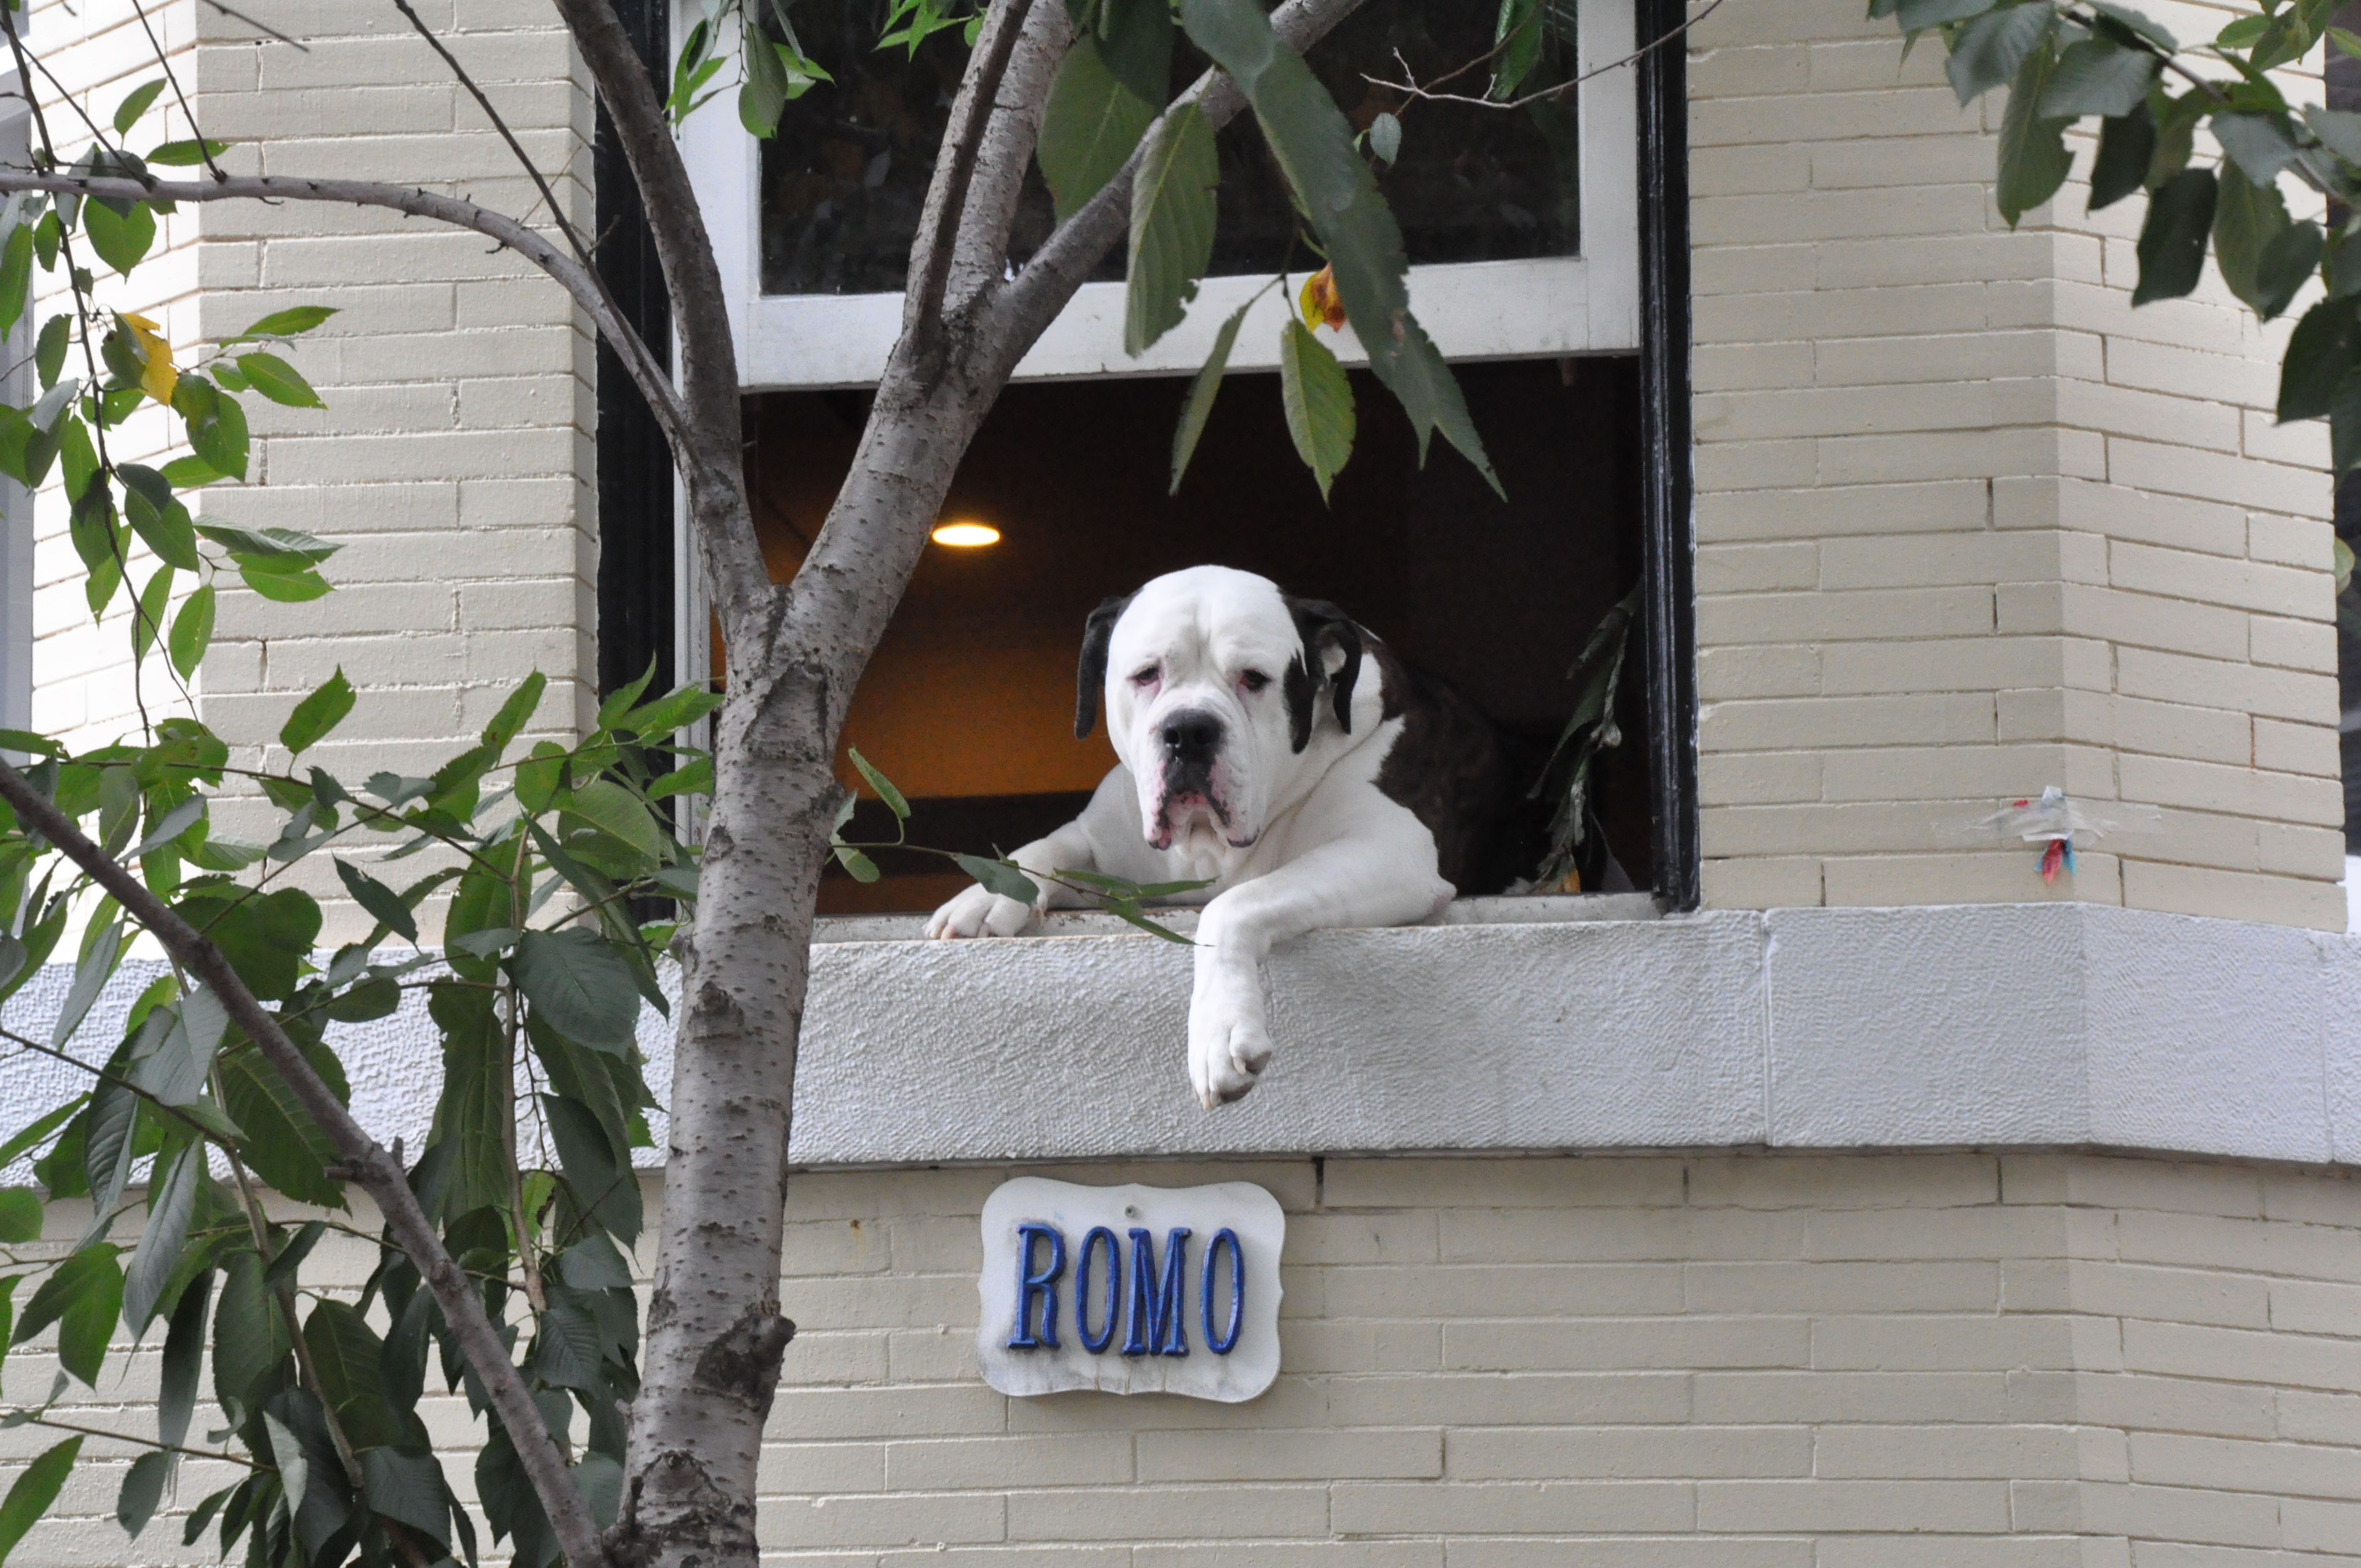 Romo, D.C.'s most famous dog, is moving on